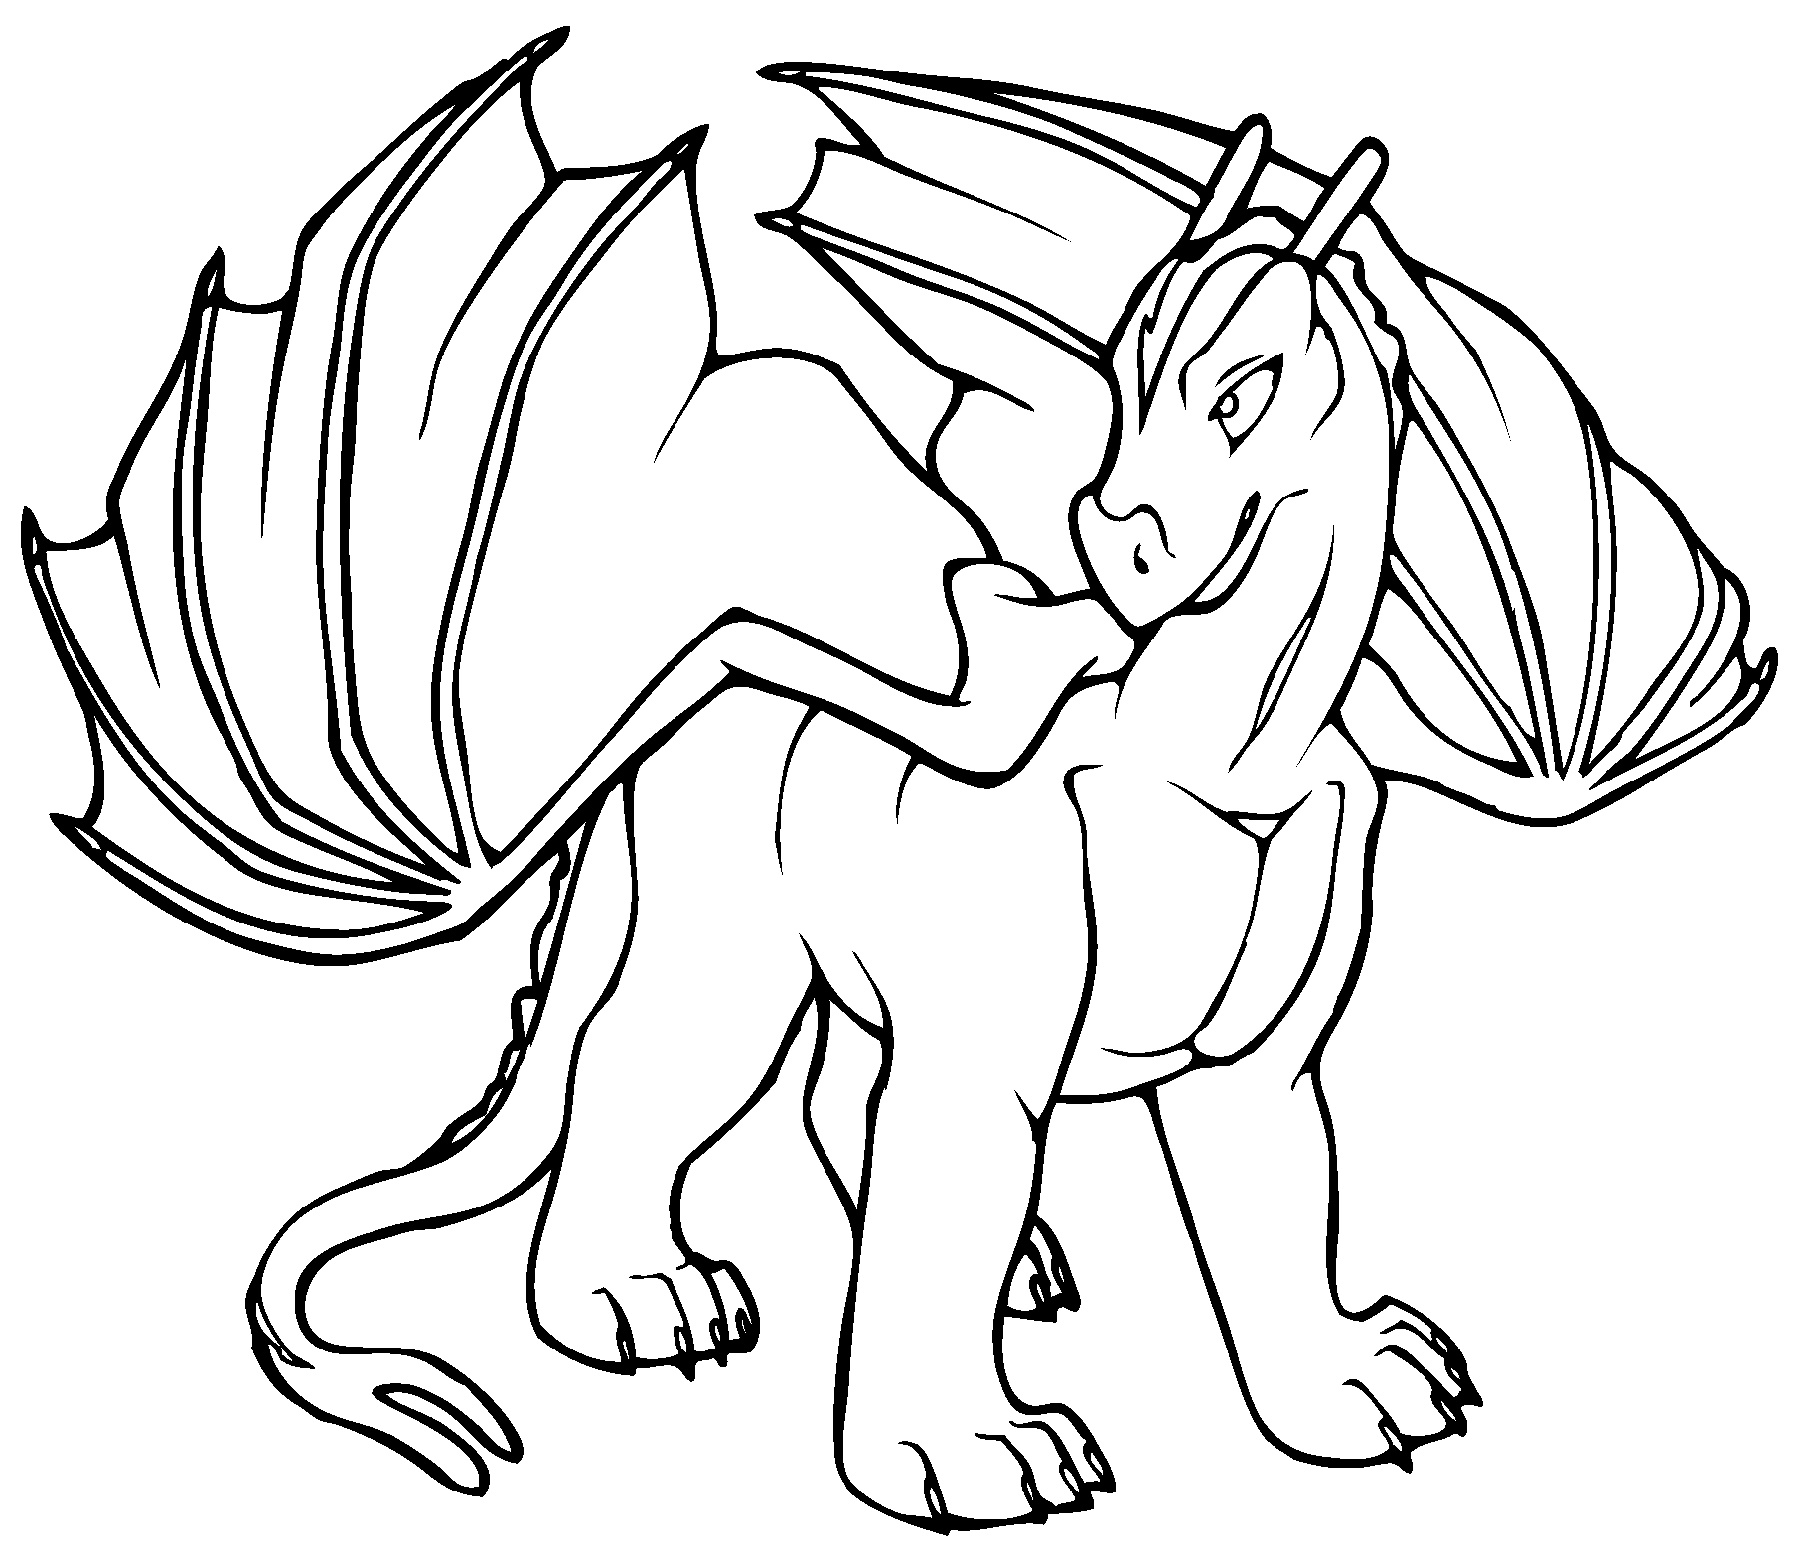 Lego Elves Coloring Pages Dragon